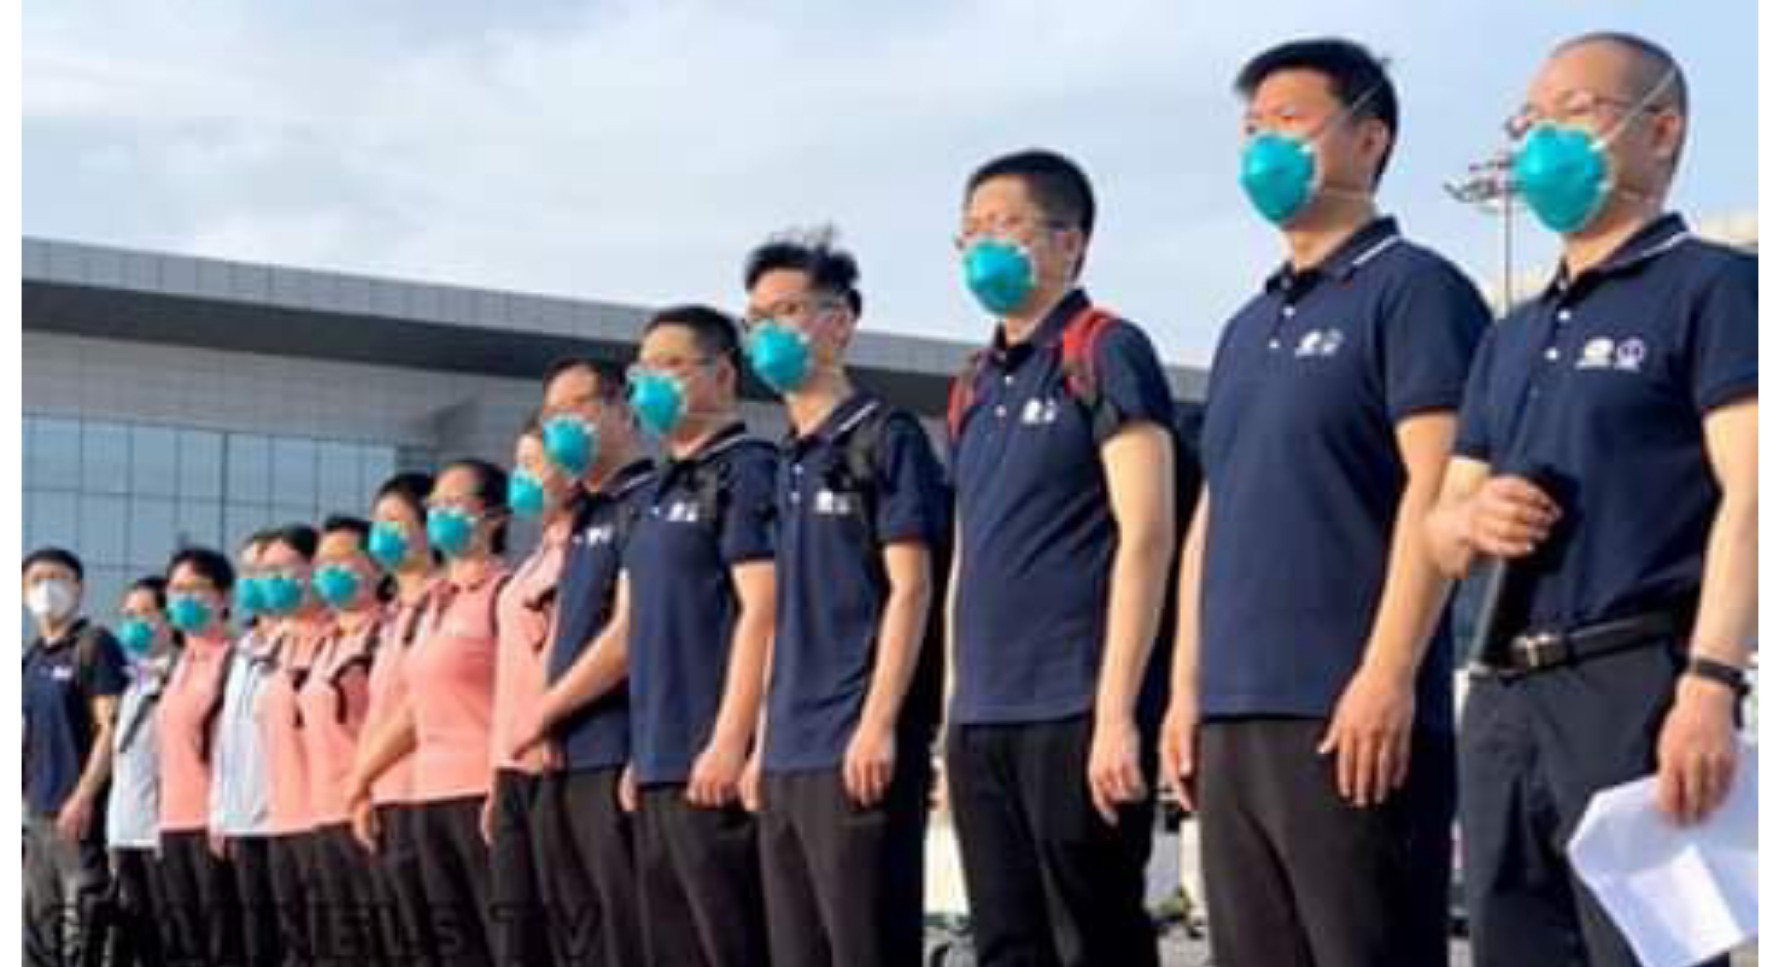 CCECC reveals what Chinese medical team came to do in Nigeria